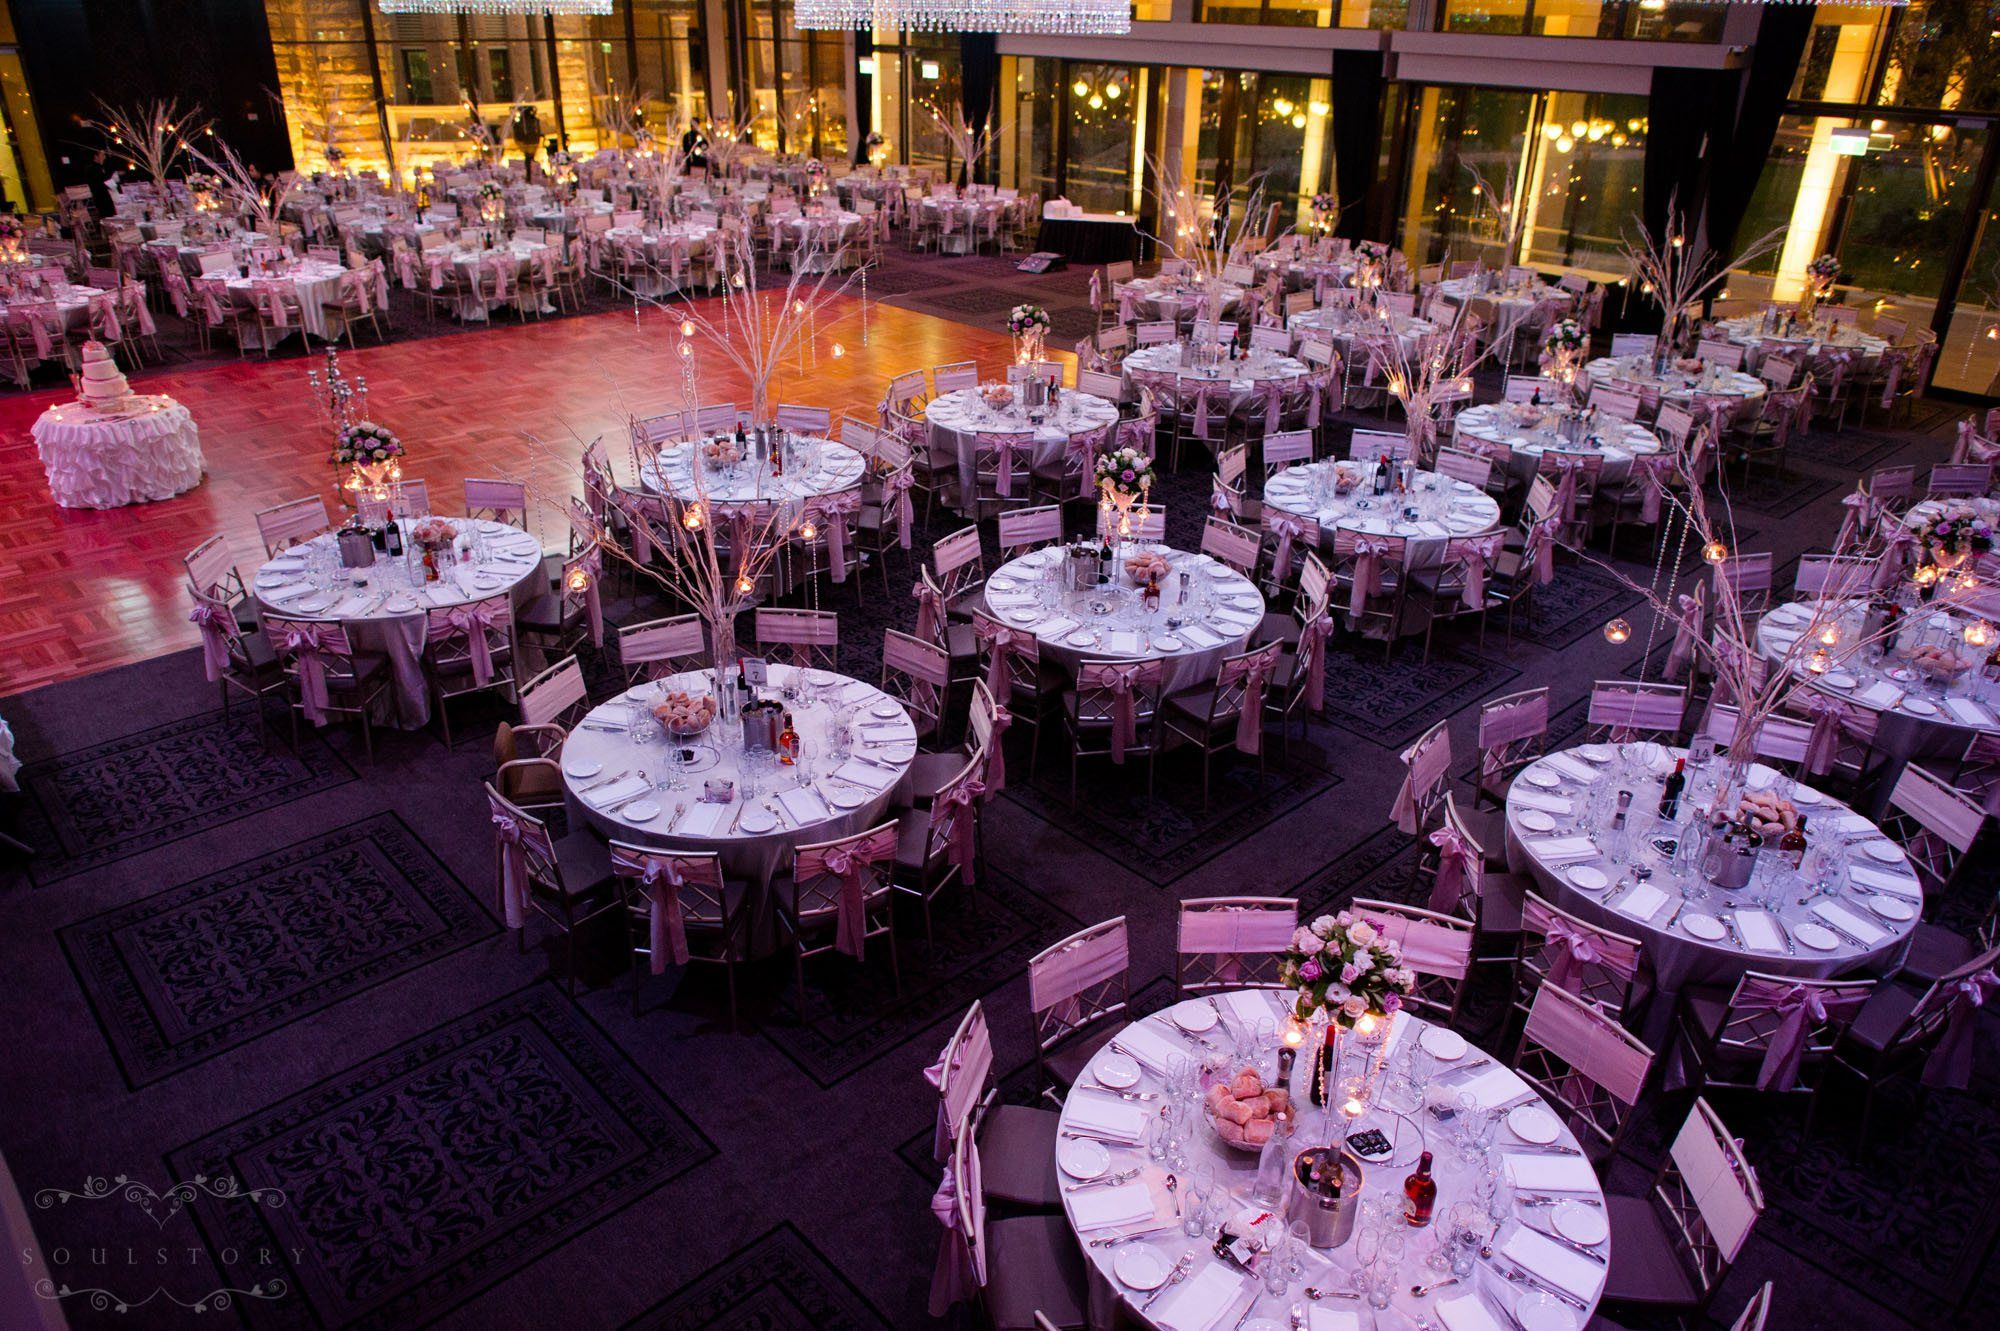 Curzon hall sydney wedding venue a sweeping view of lady marys with 5 event rooms wrap around terraces select curzon hall for your wedding venue or next corporate event in sydney junglespirit Choice Image